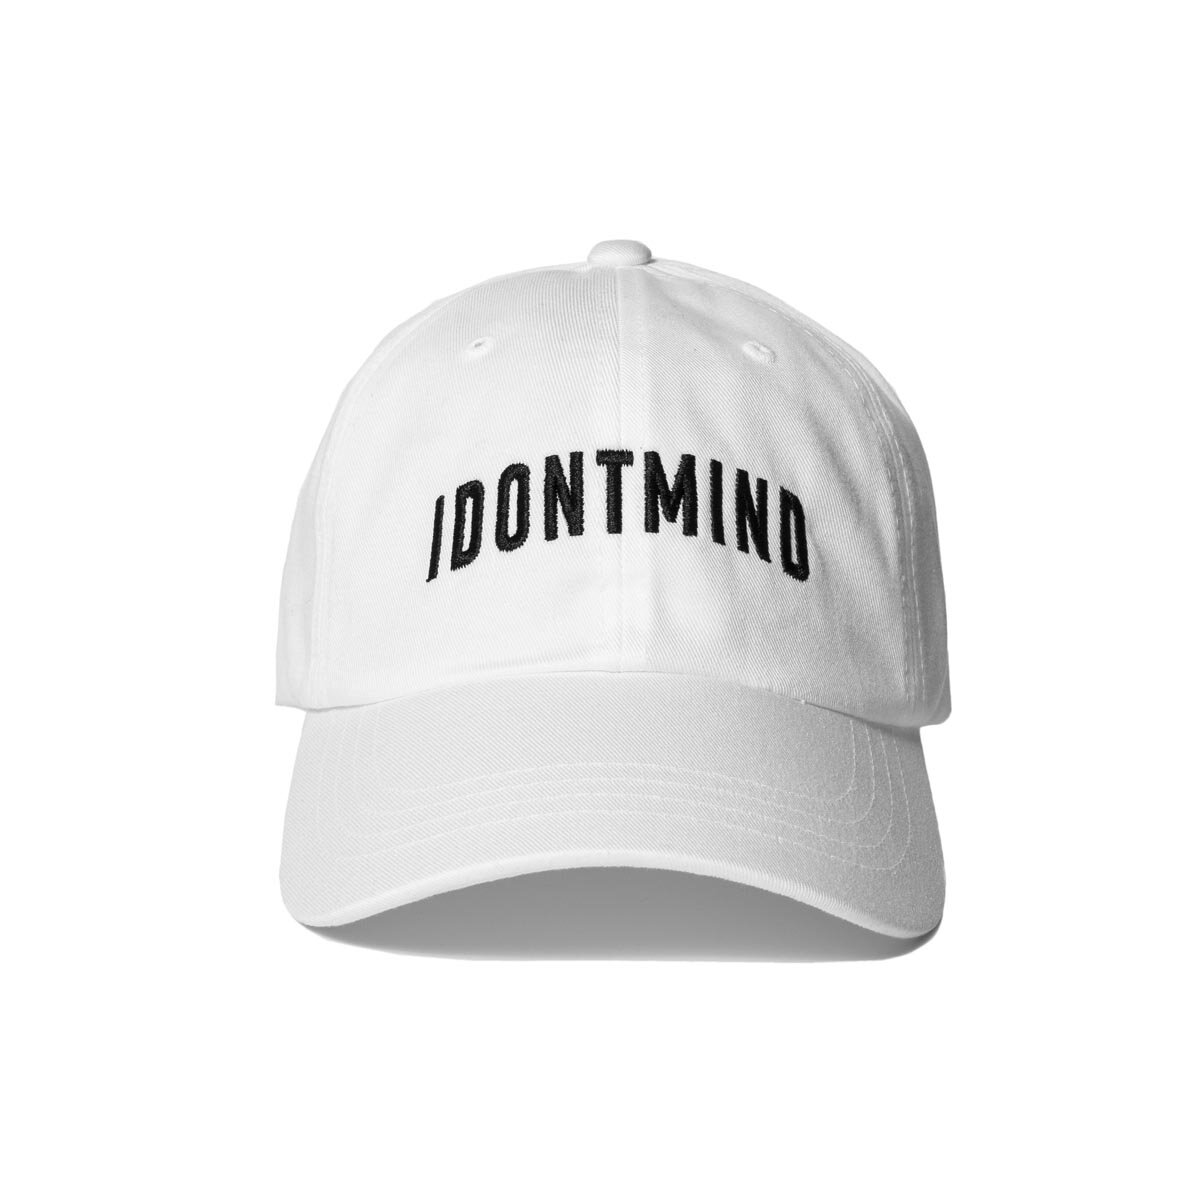 idontmind-campus-hat-white-front.jpg